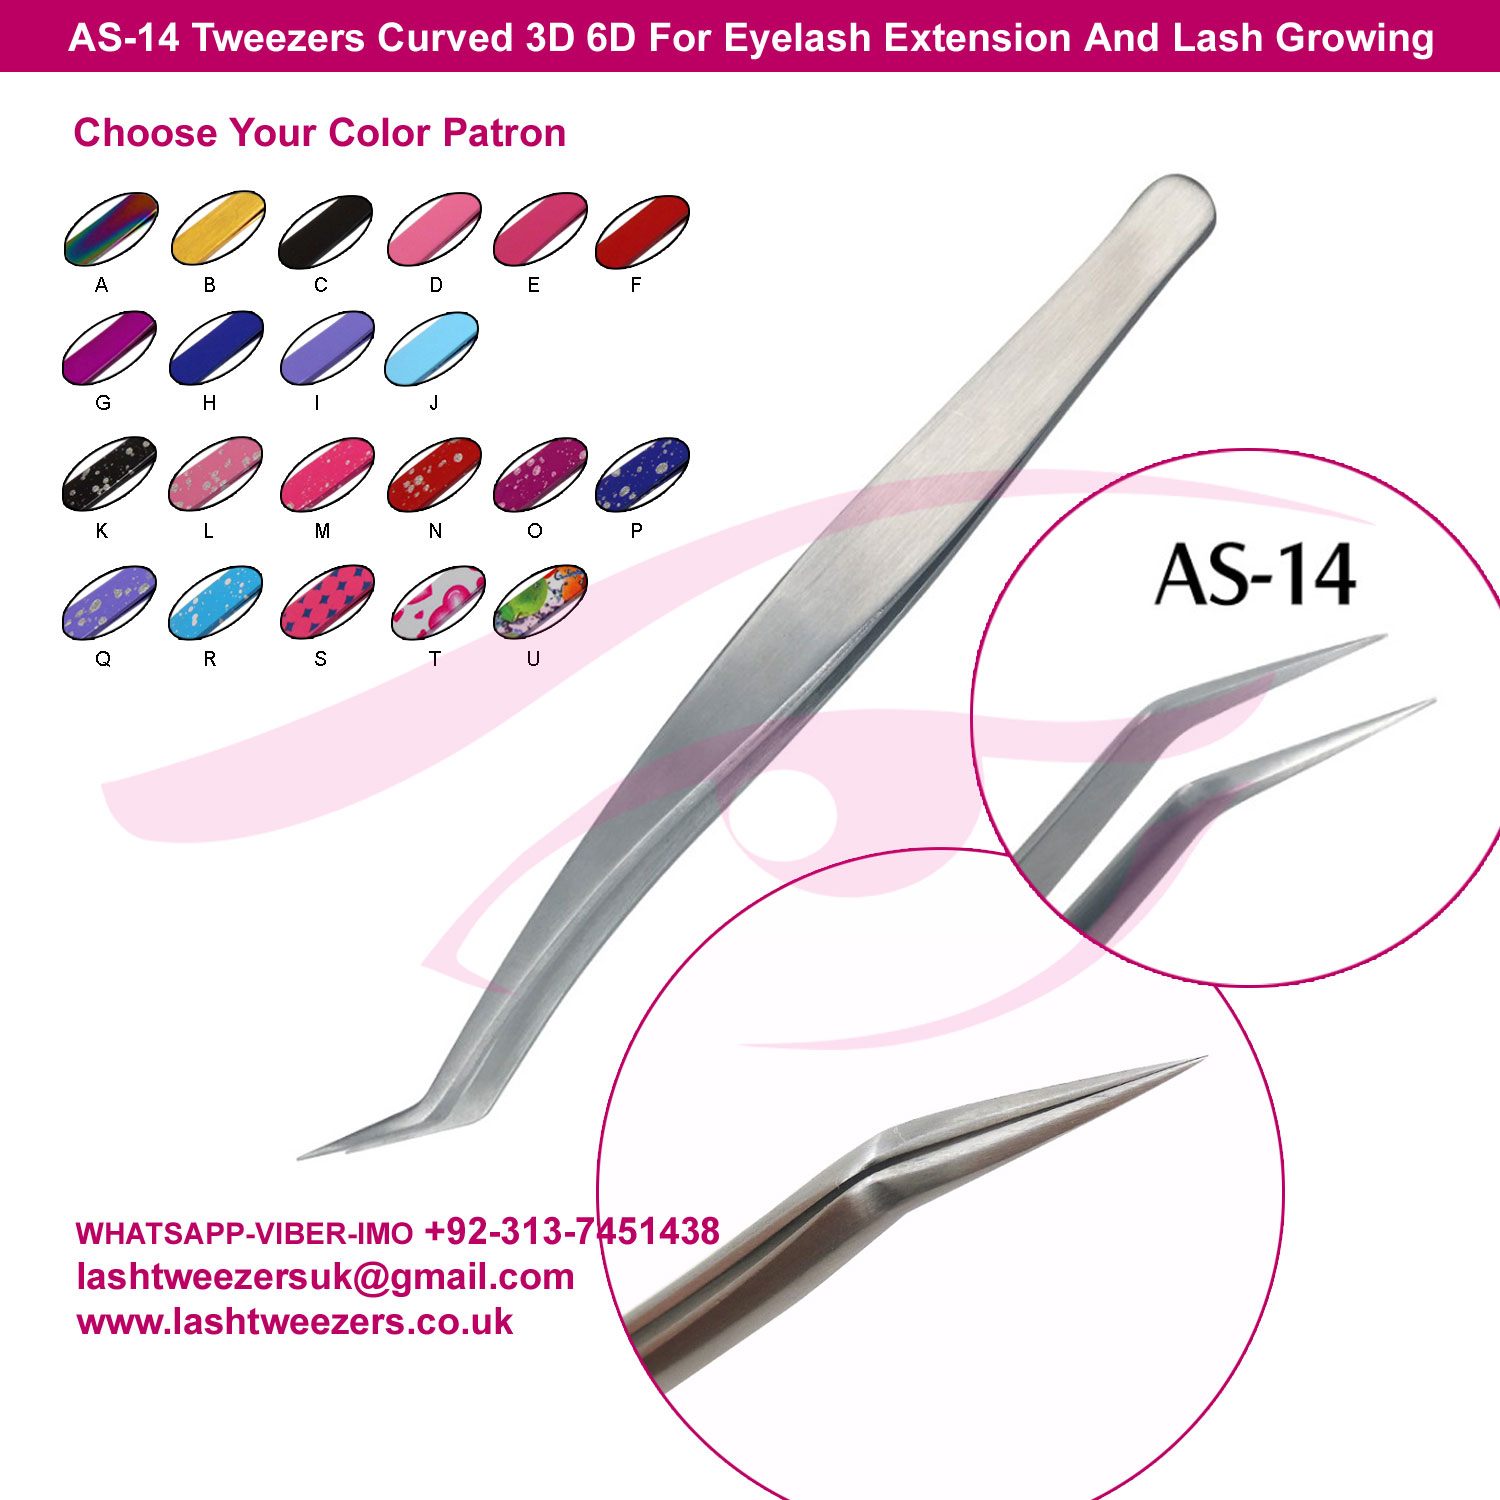 AS-14-Tweezers-Curved-3D-6D-For-Eyelash-Extension-And-Lash-Growing